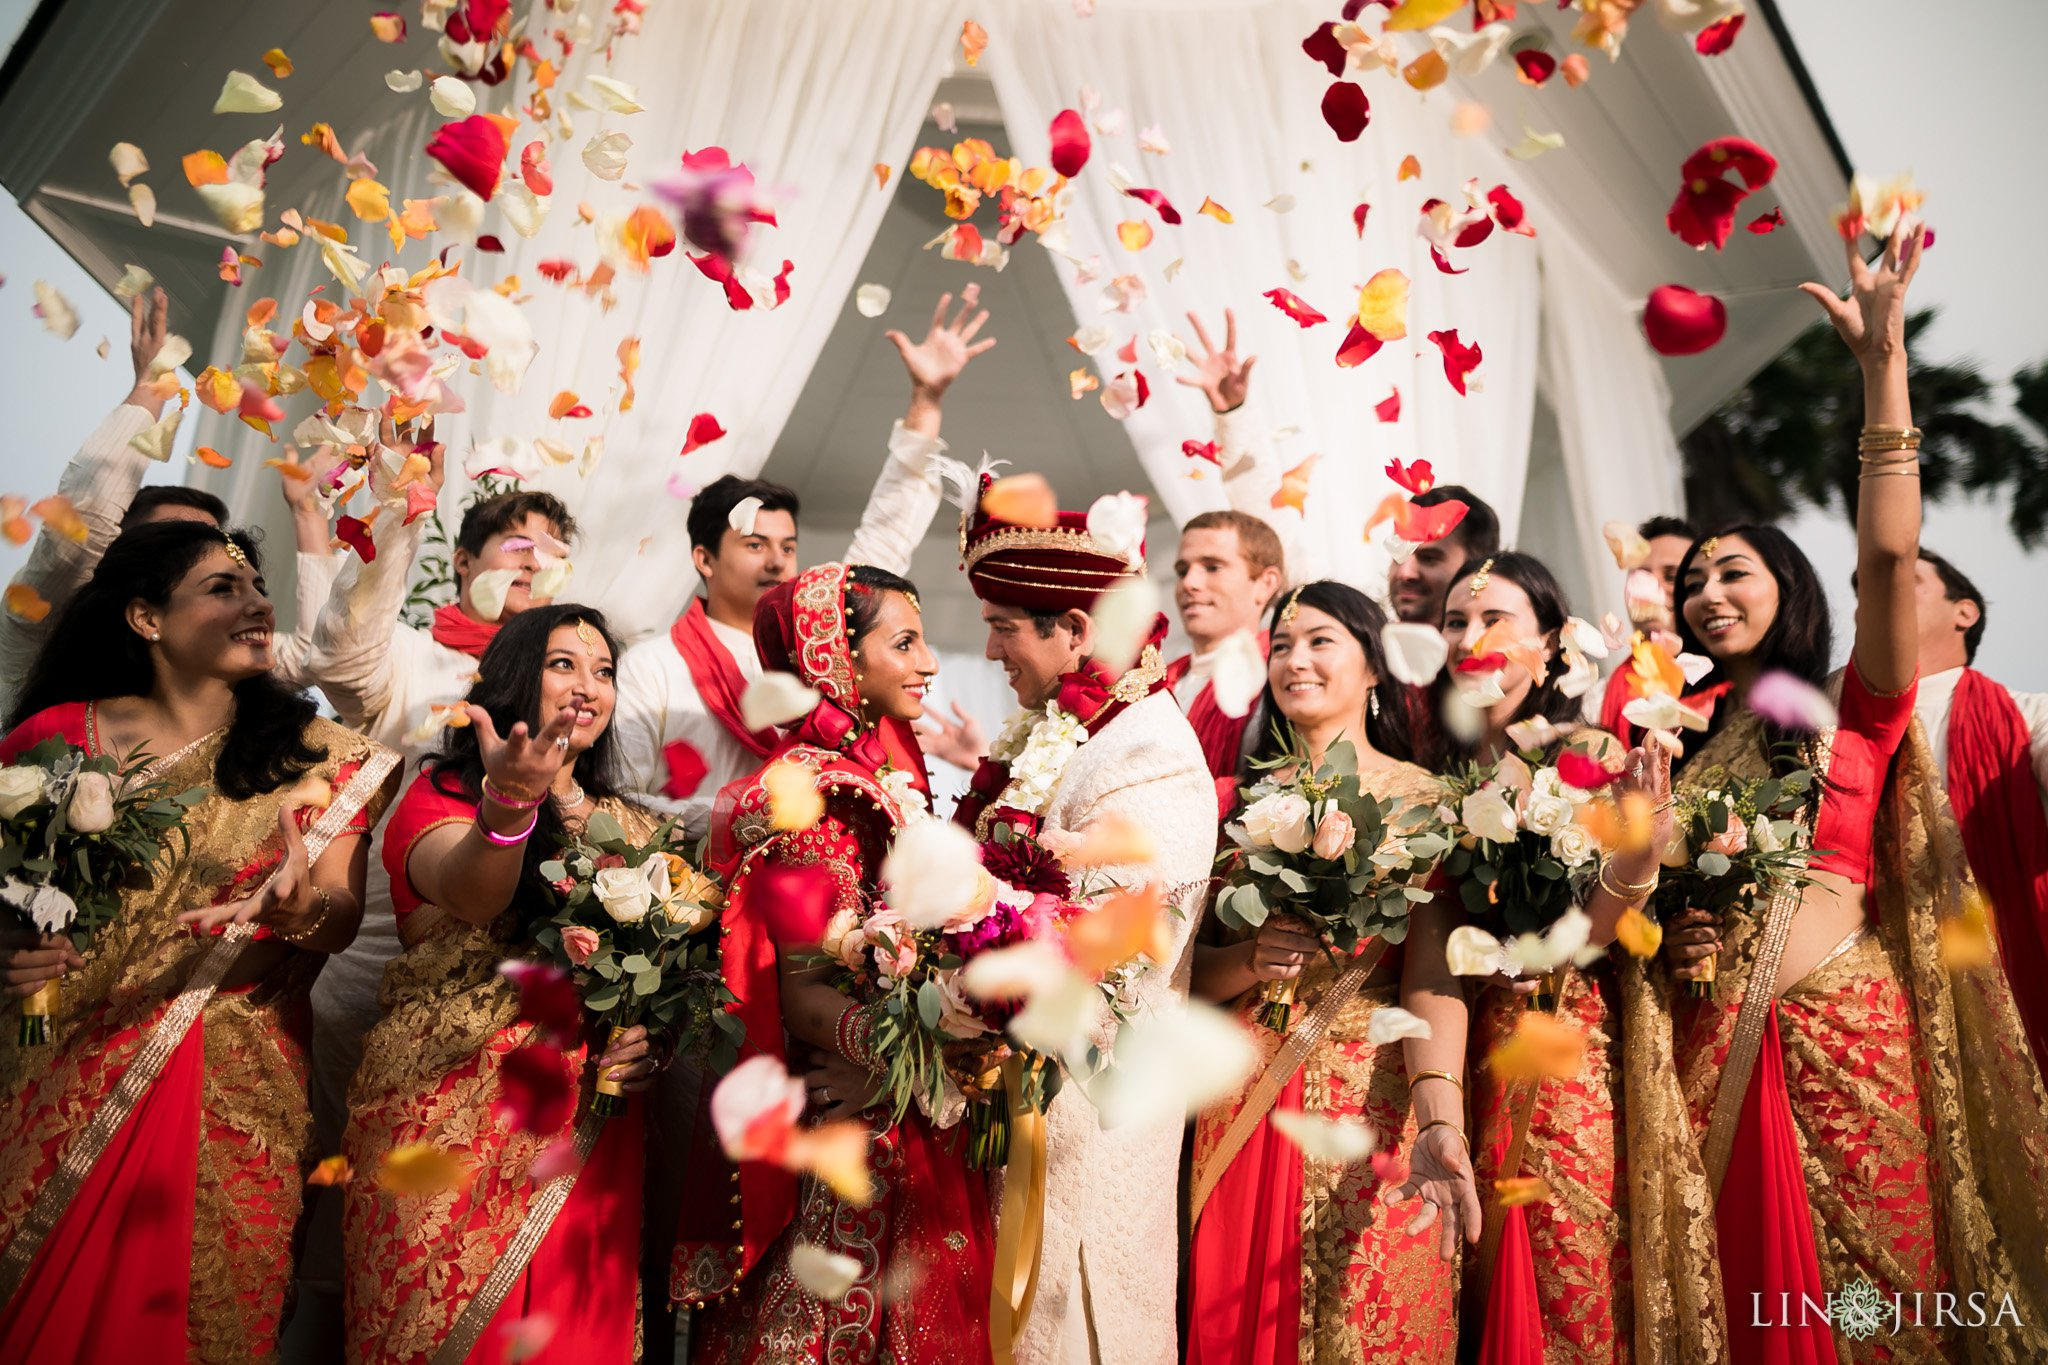 Attending an Indian Weddings: A niche tourism opportunity